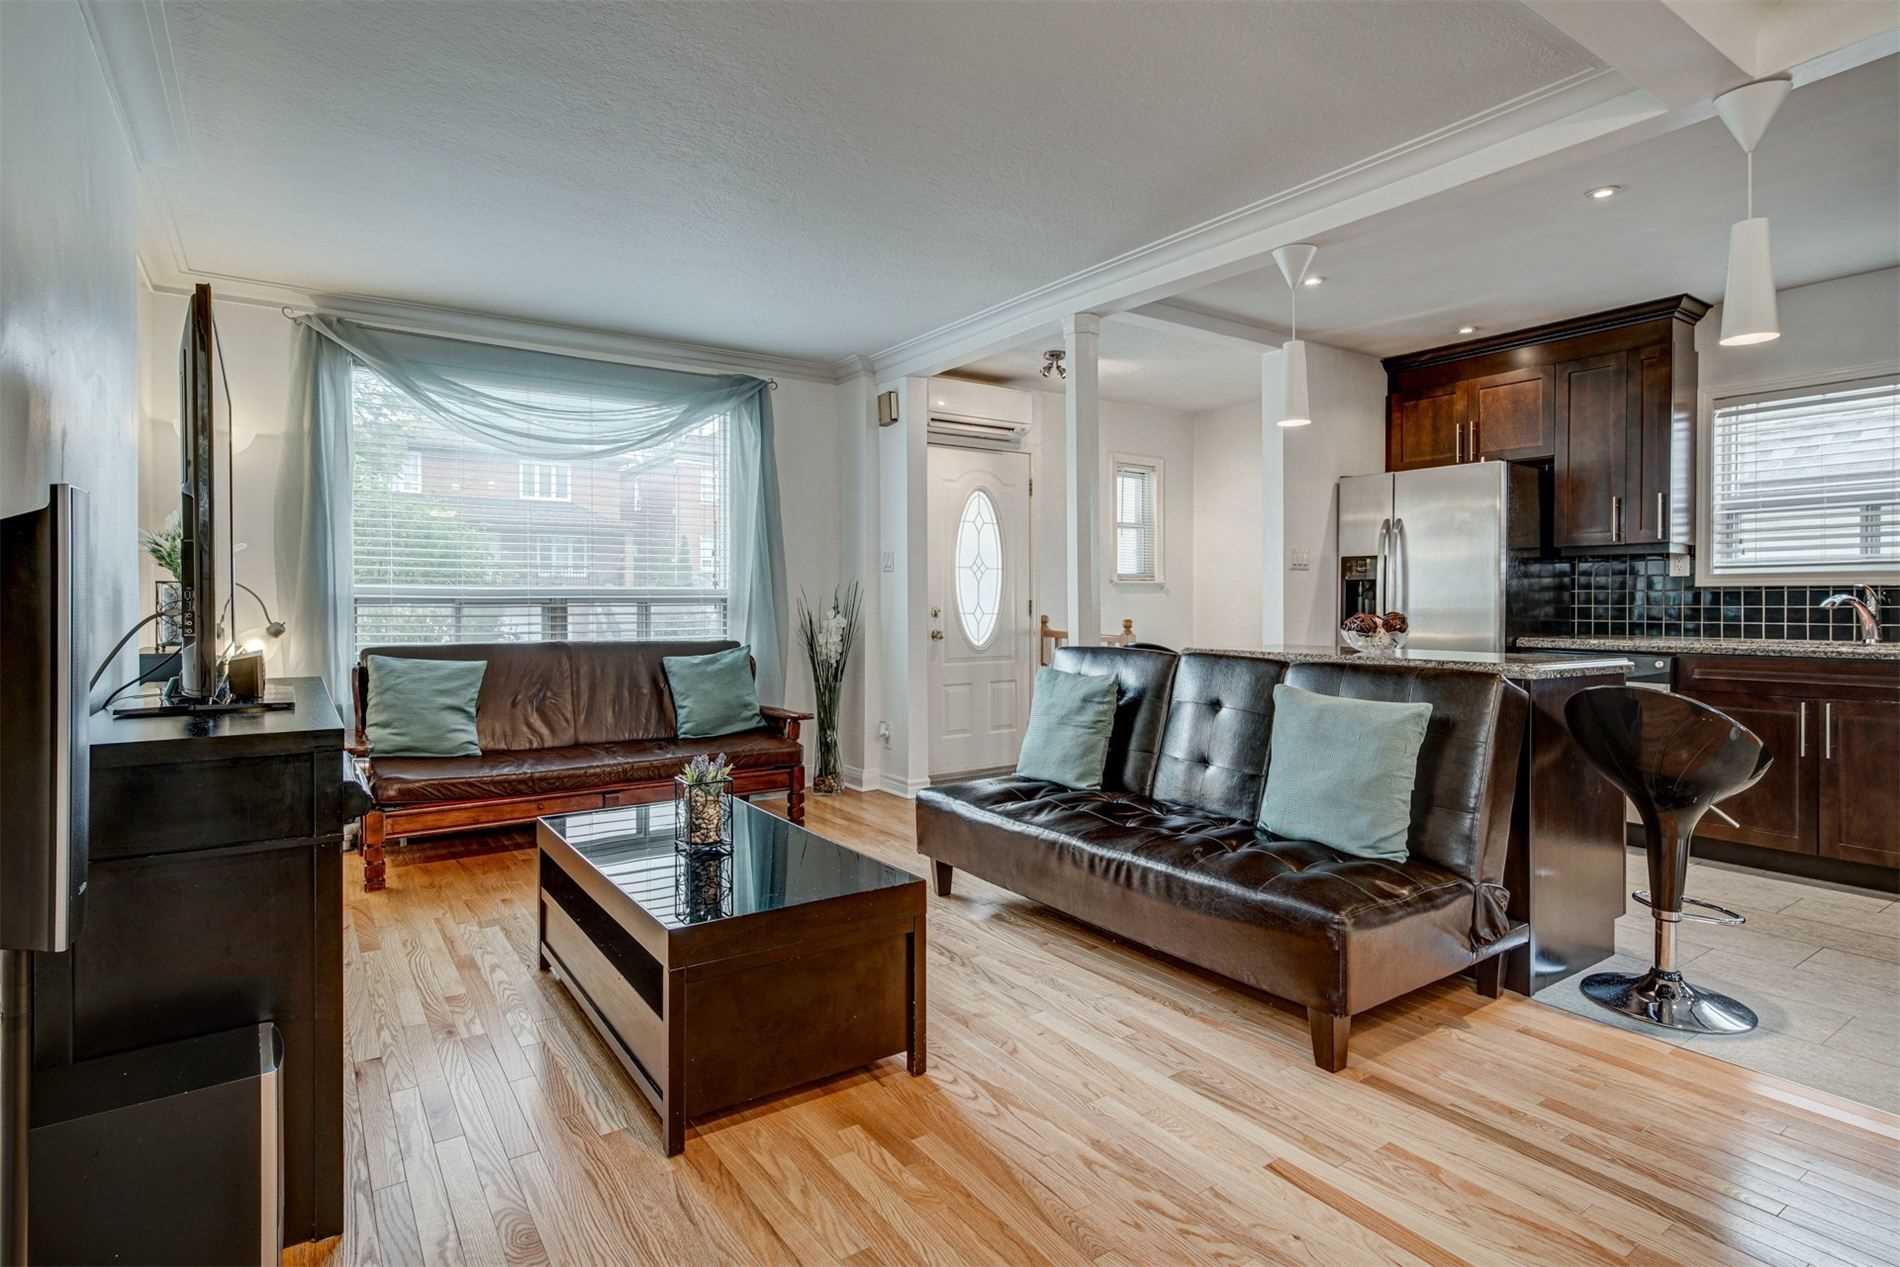 554 Caledonia Rd - Caledonia-Fairbank Detached for sale, 2 Bedrooms (W5305900) - #10